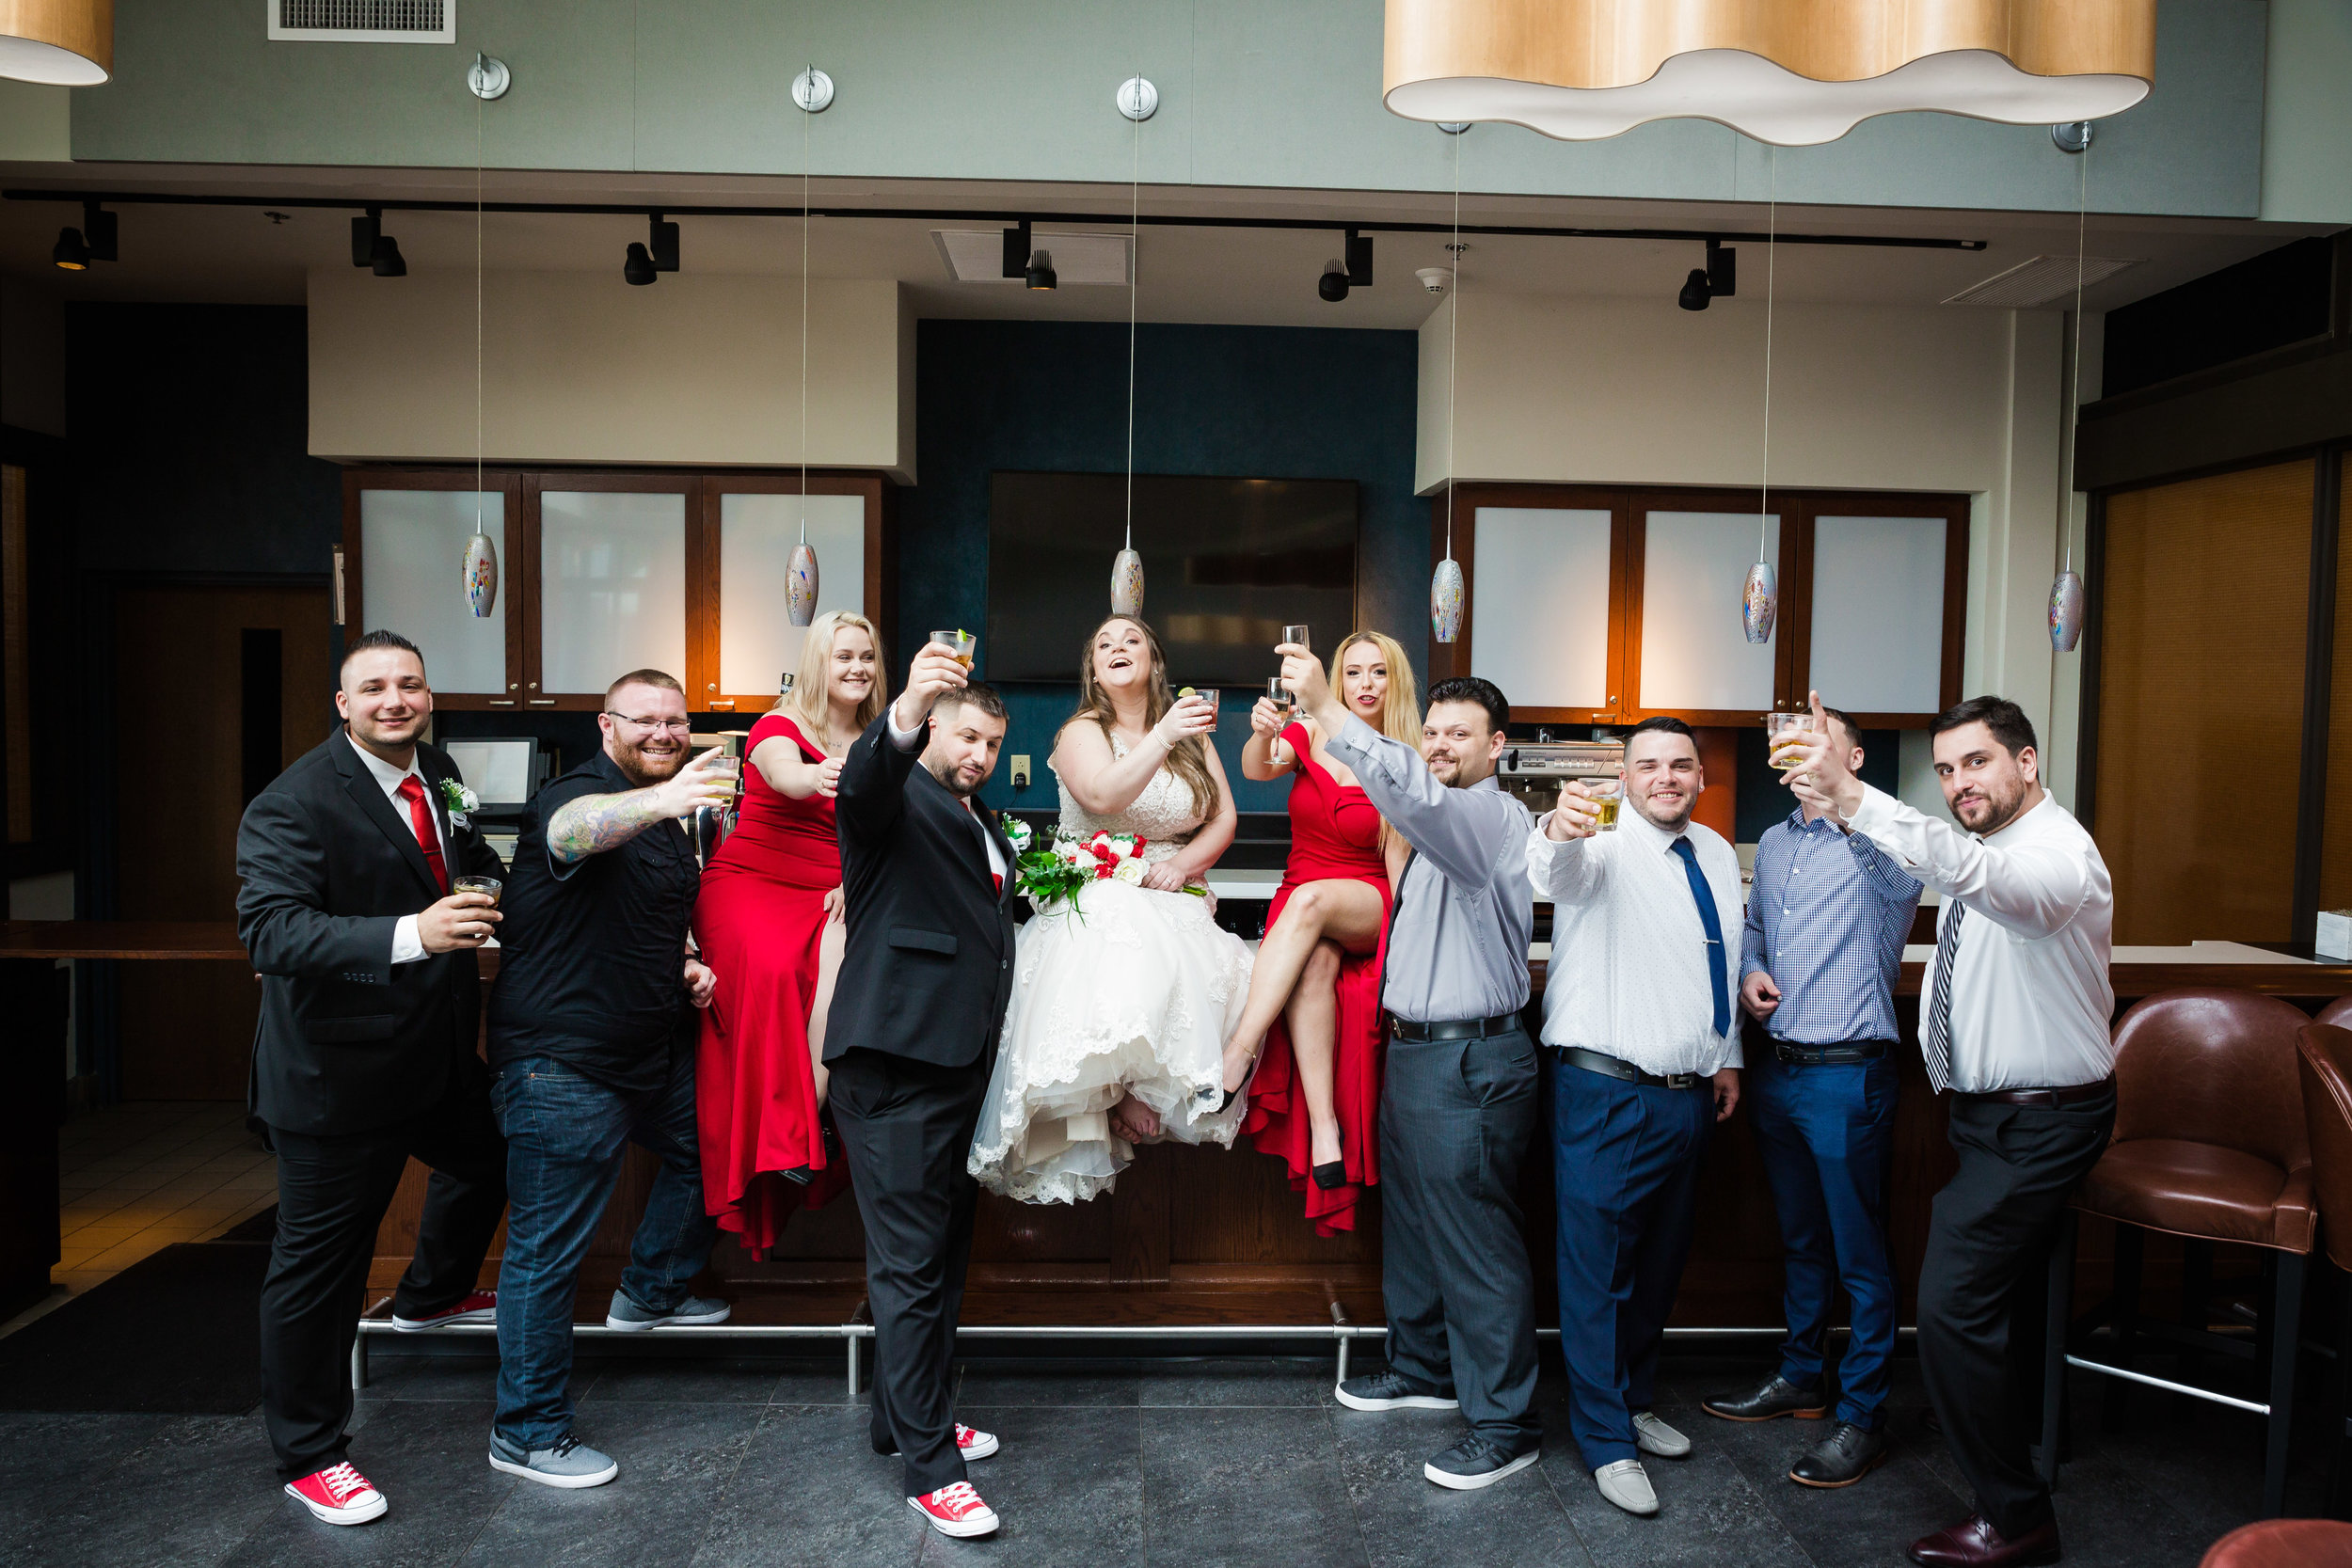 CHAUNCEY HOTEL AND CONFERENCE CENTER WEDDING PHOTOGRAPHY-73.jpg